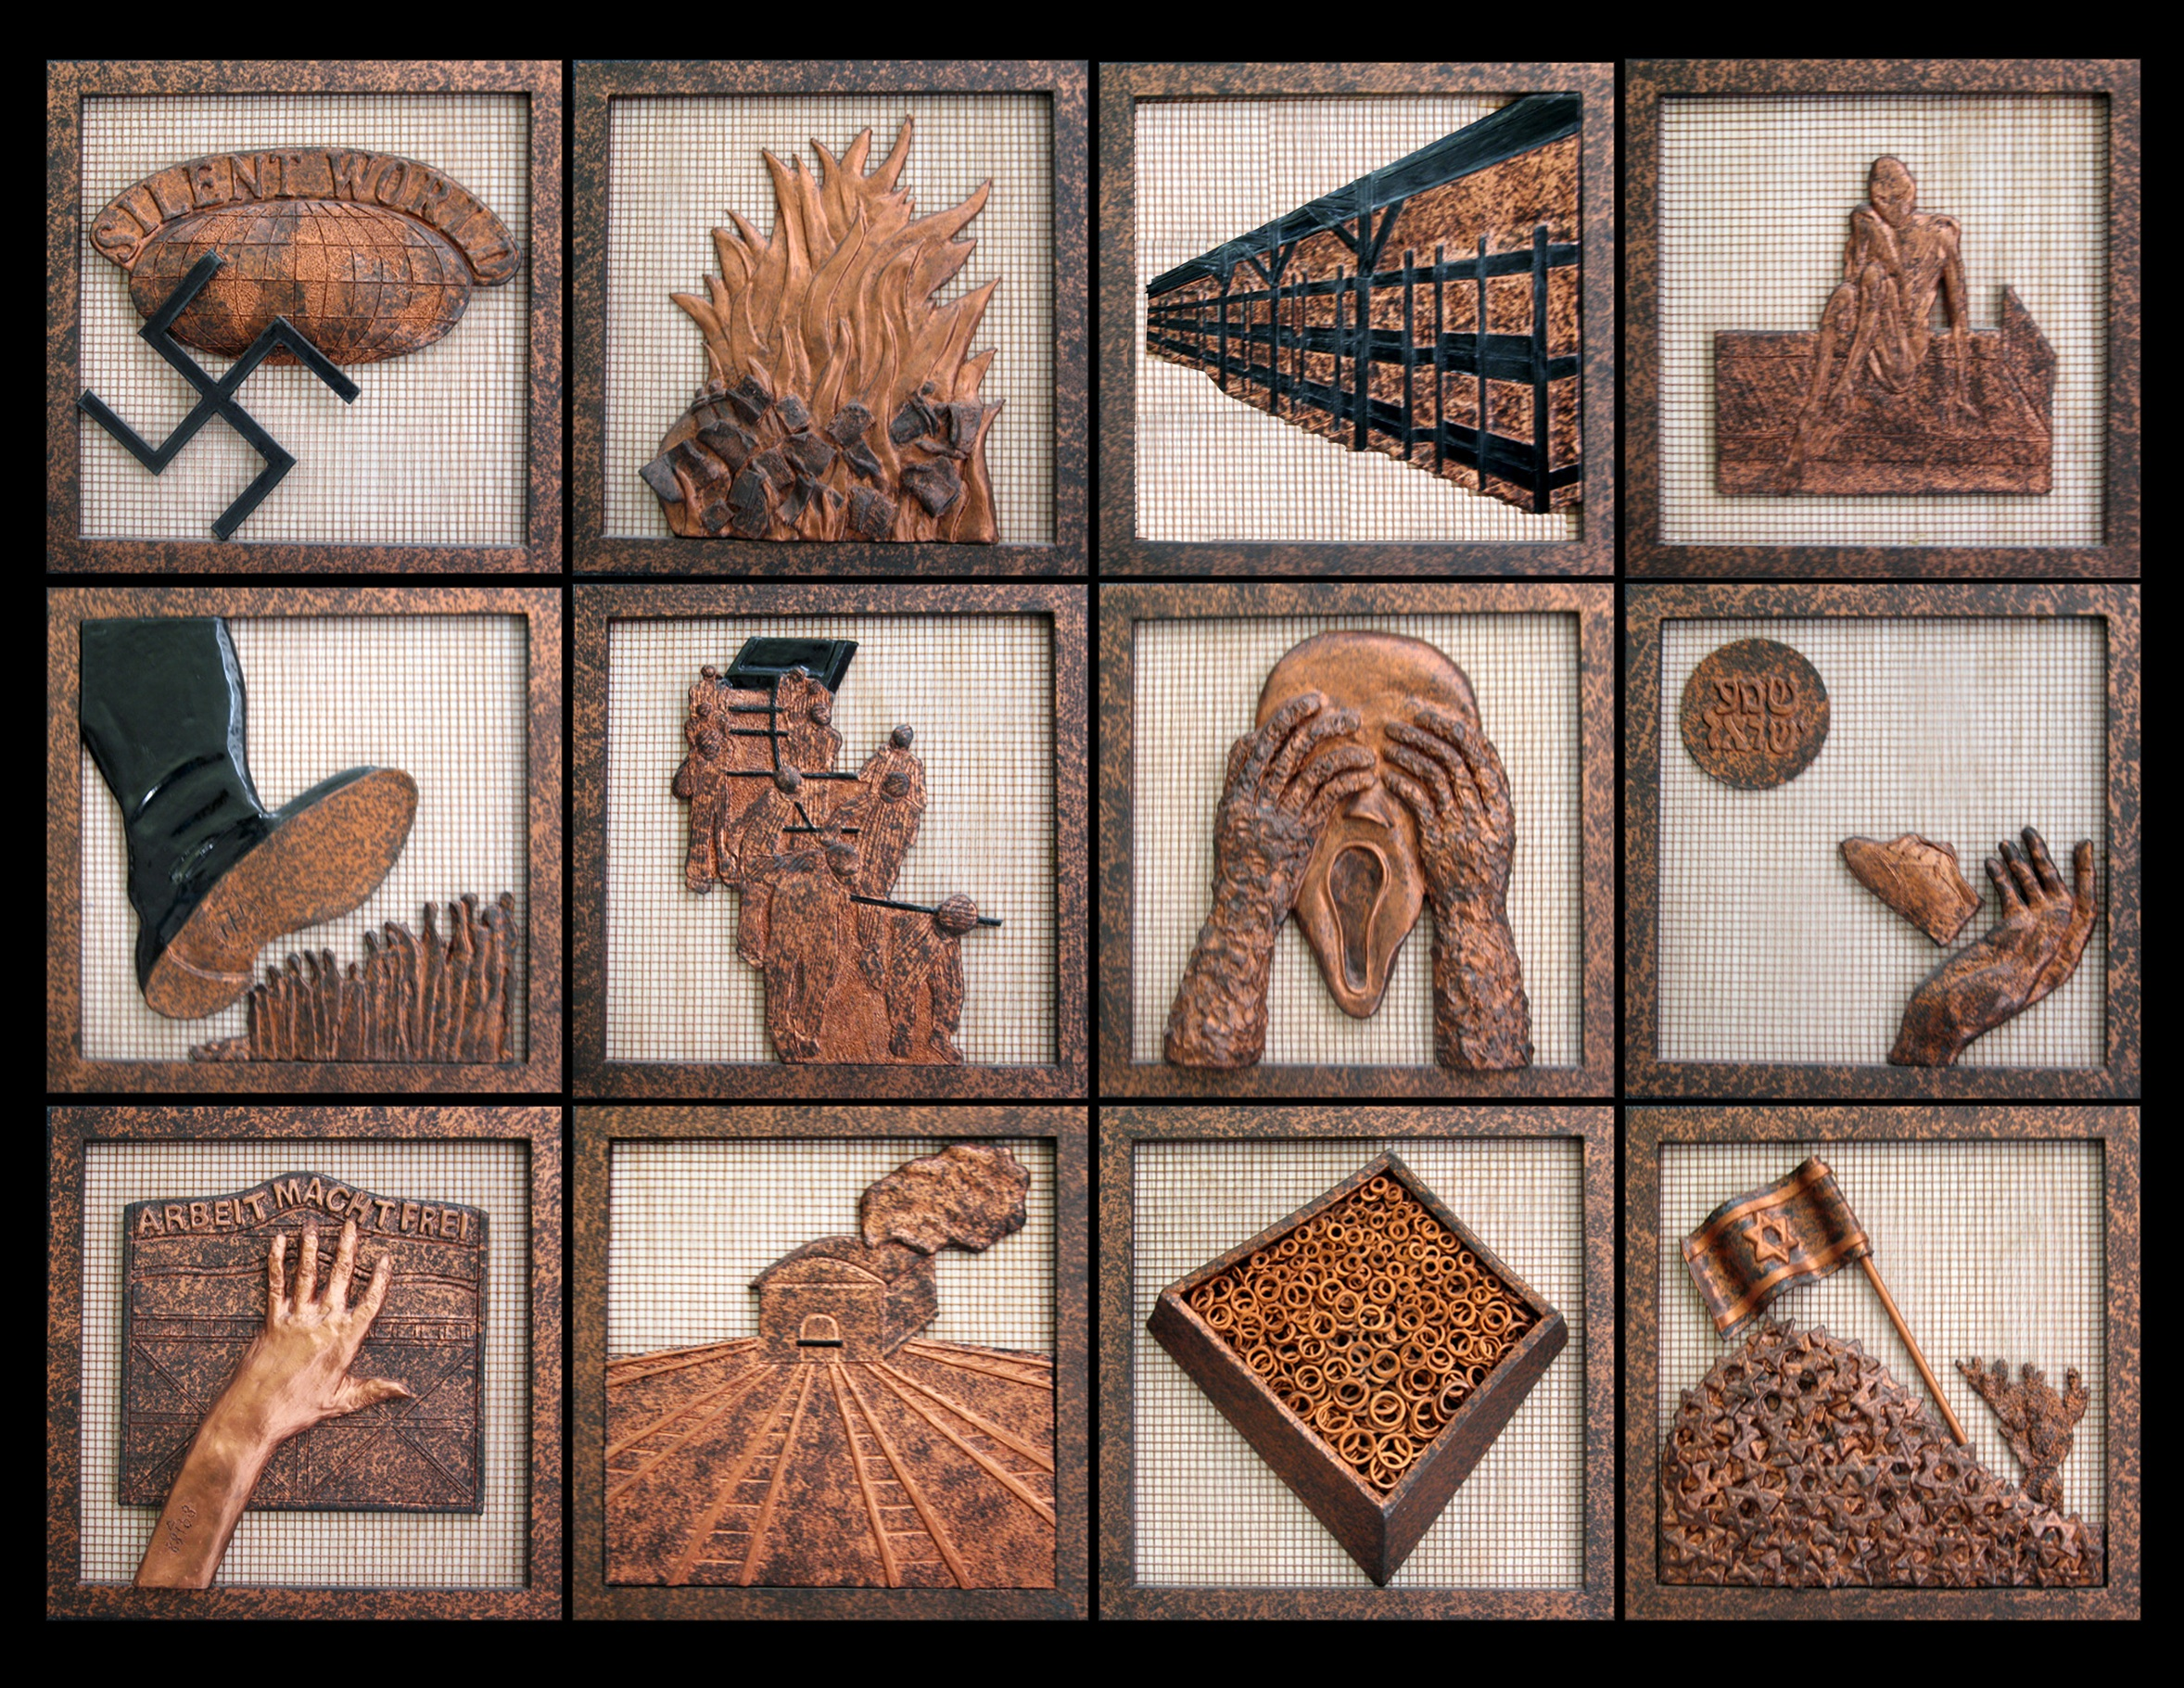 12 Windows to the Unforgettable Past. Click for a complete description and more of Gabriella's sculptures.